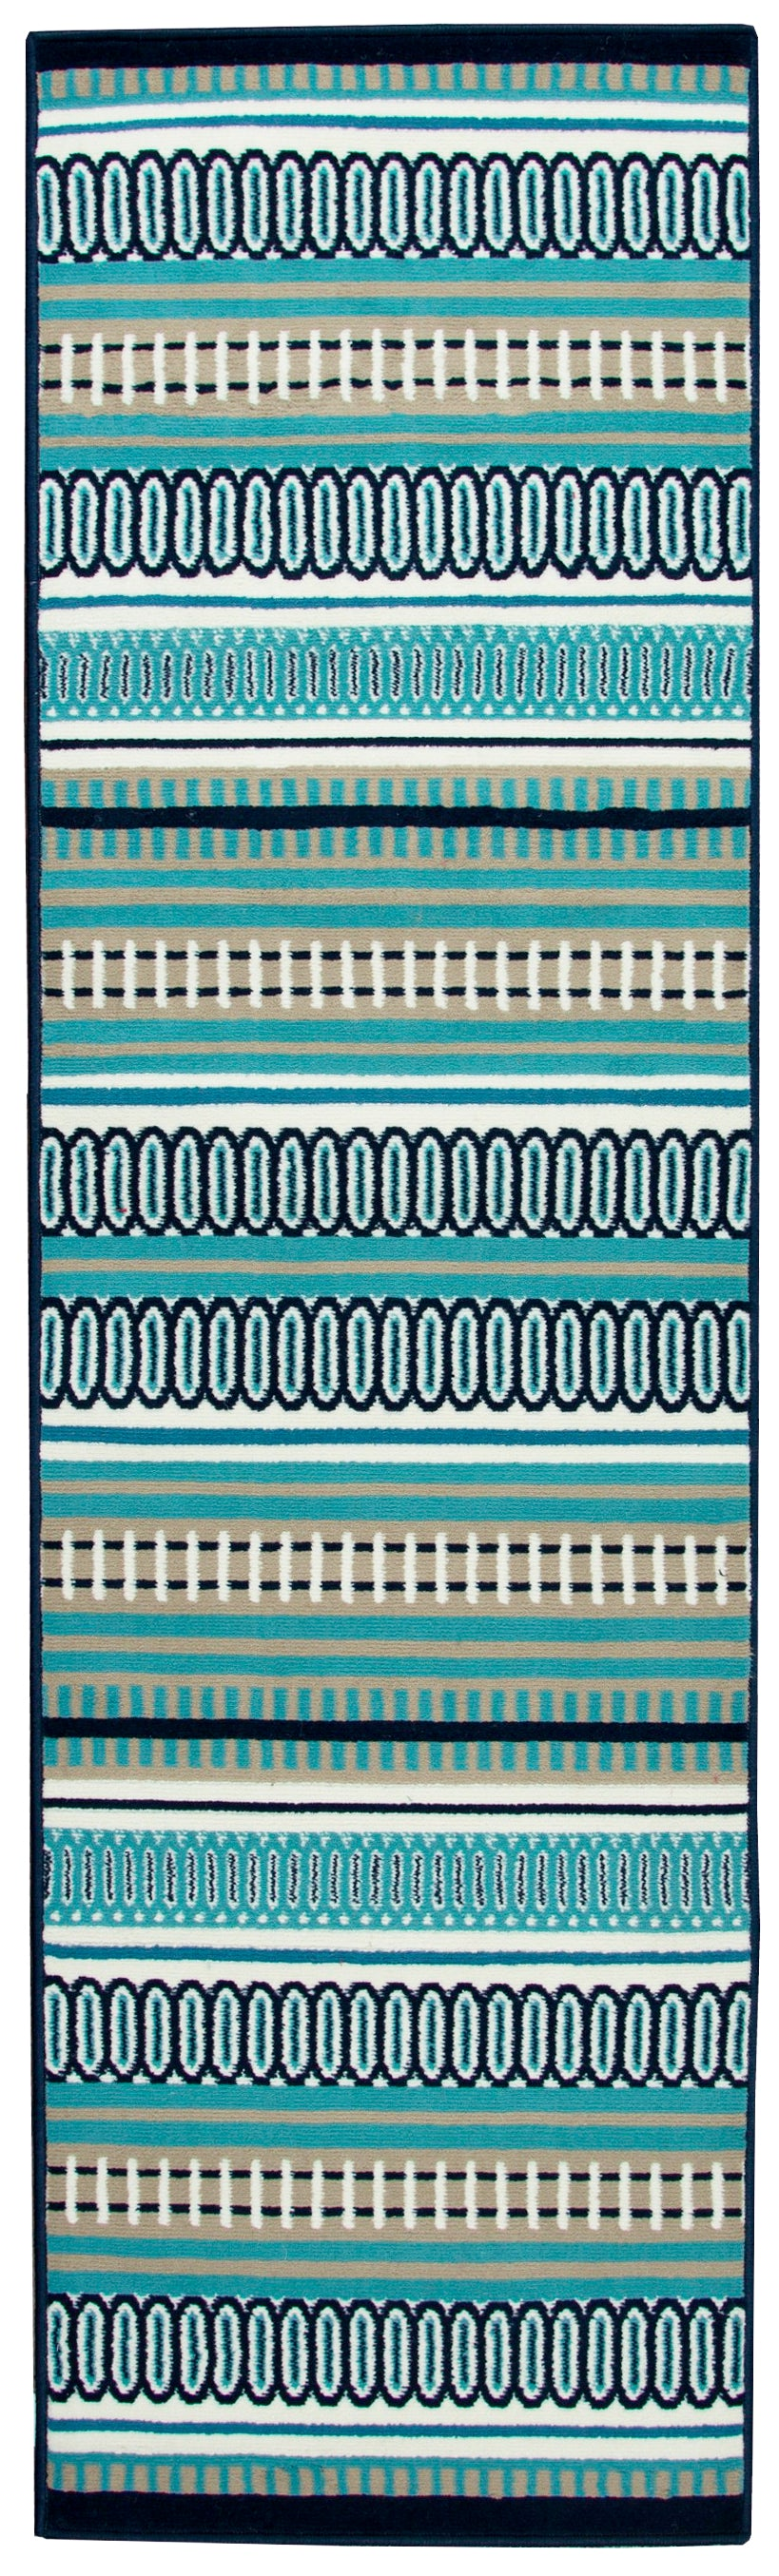 Rizzy Home Glendale GD7000 Multi-Colored Pattern/ Stripe Area Rug